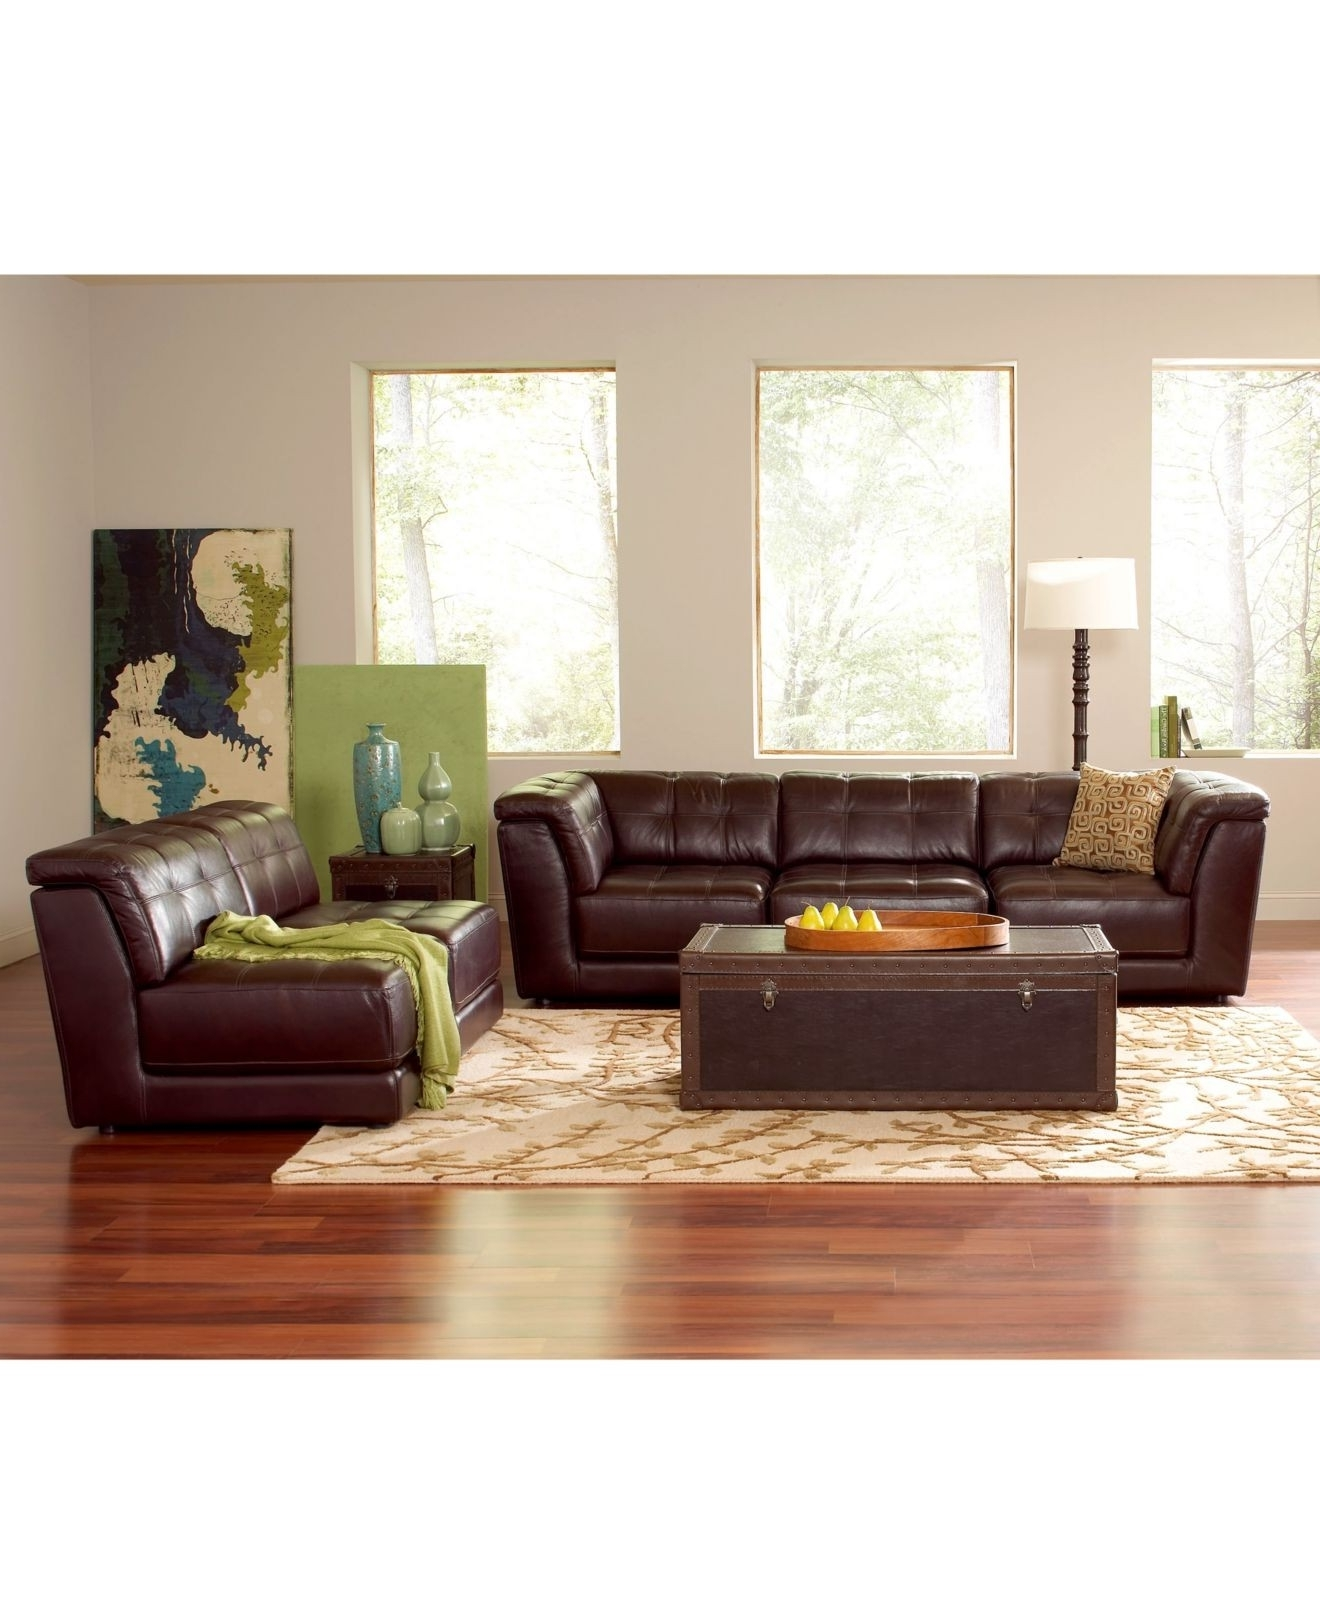 New Sectional Sofa Tampa – Buildsimplehome Inside 2017 Tampa Sectional Sofas (View 6 of 15)